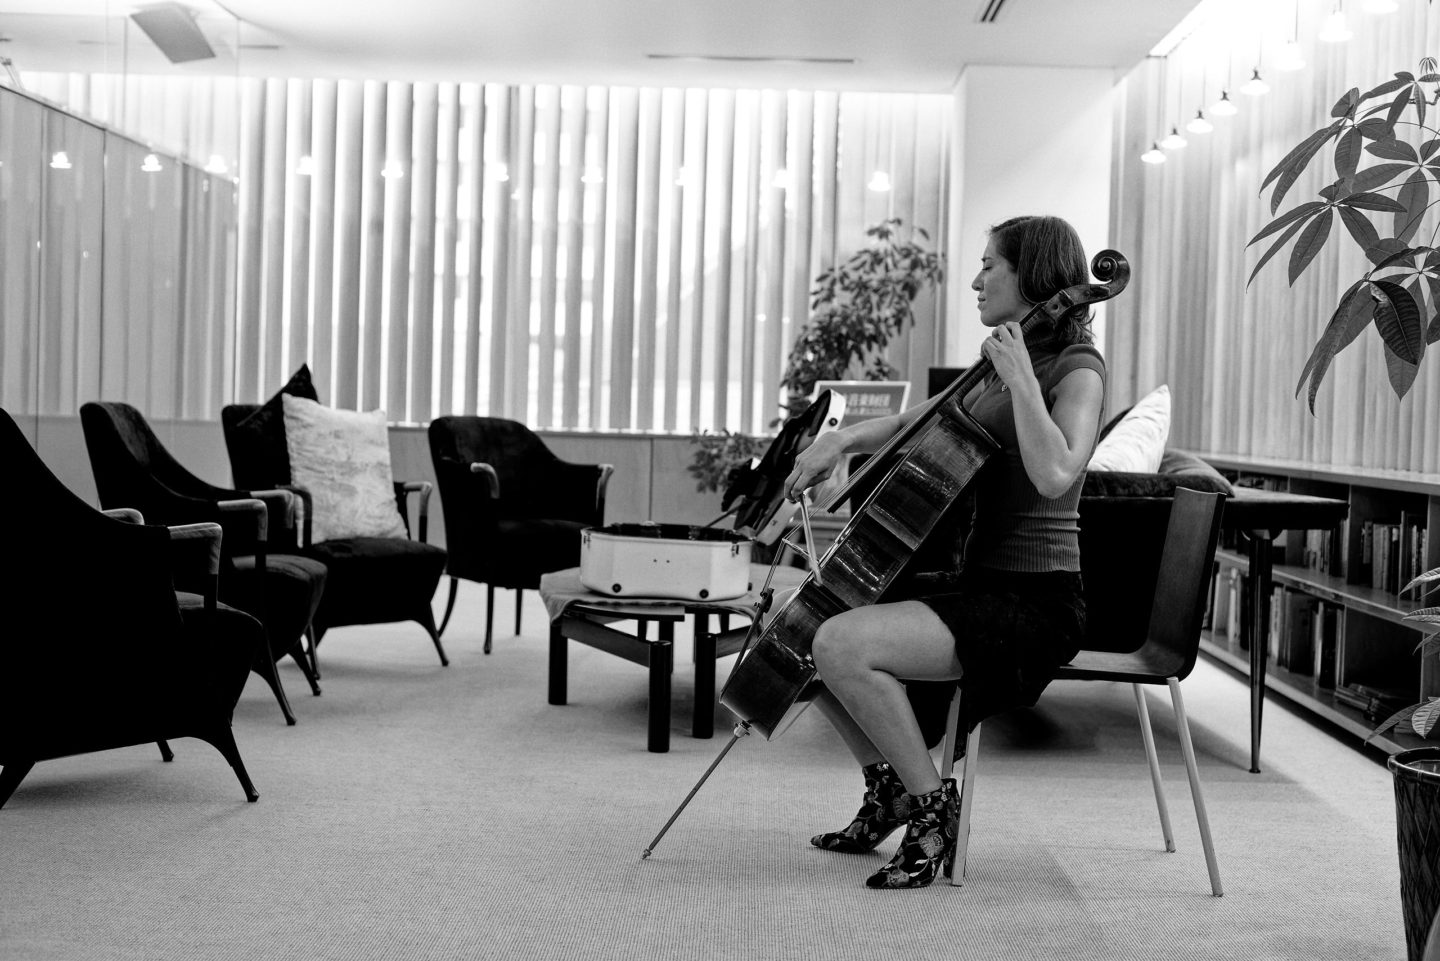 Camille Thomas in Tokyo with her Stradivarius Cello by Franck Socha